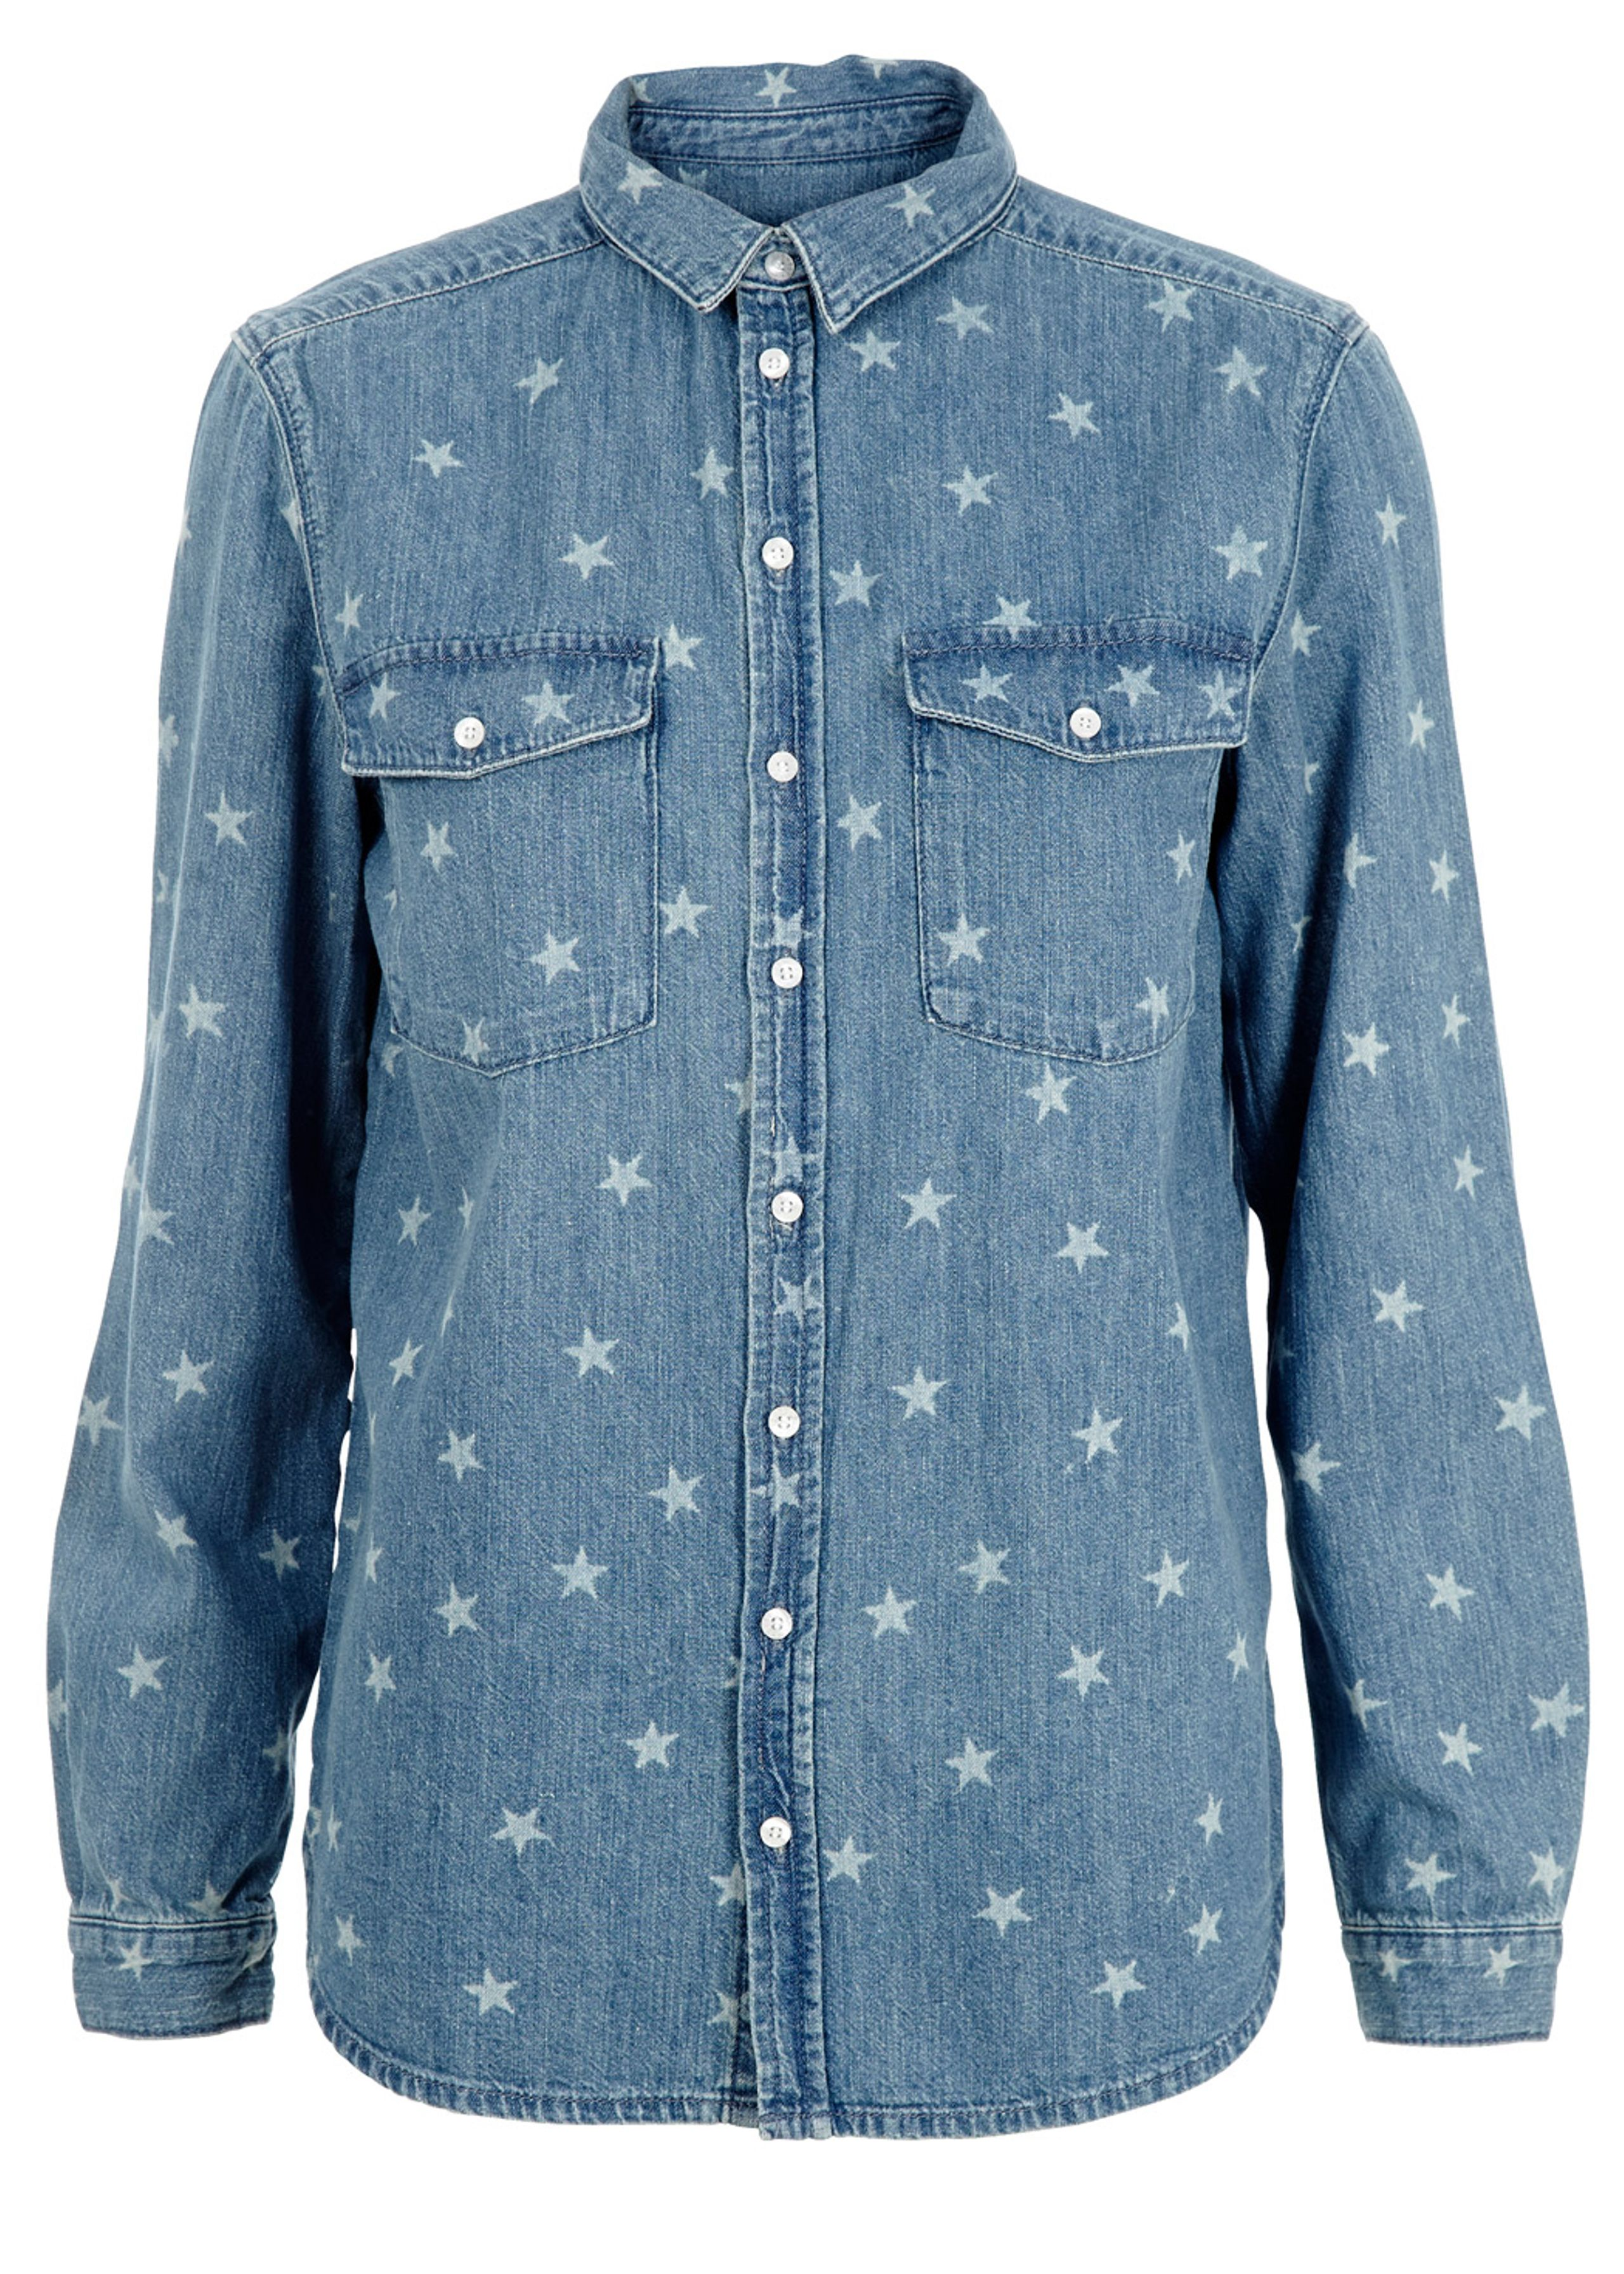 Classic shirt with stars